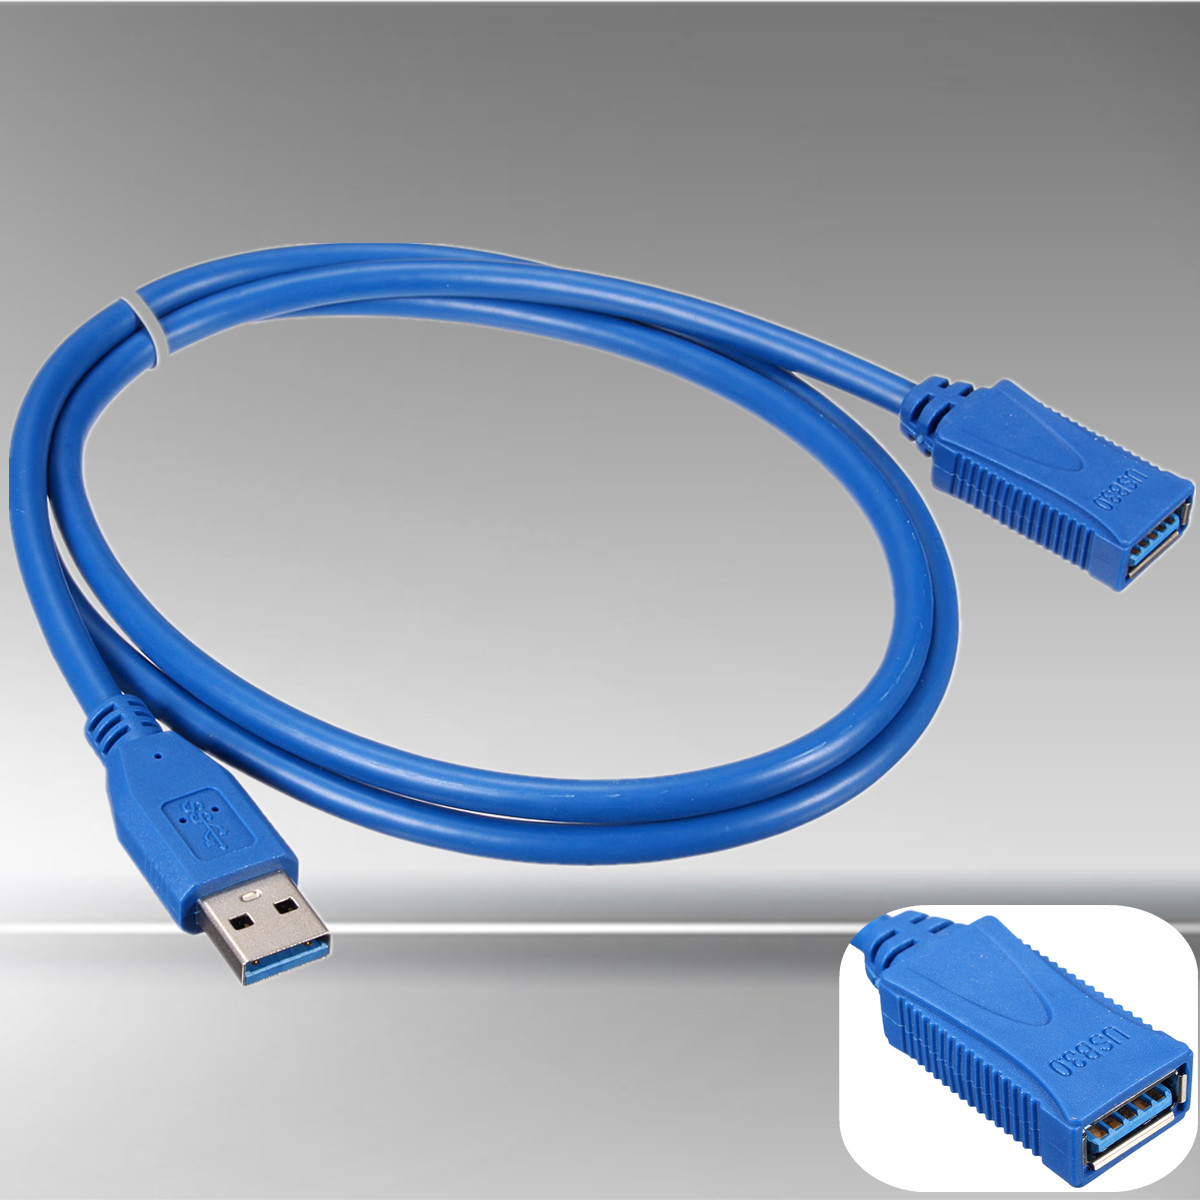 1M High Speed USB 3.0 A Male to Female Cable 1M Wire Extension Data Transfer M/F Cable Blue(China (Mainland))